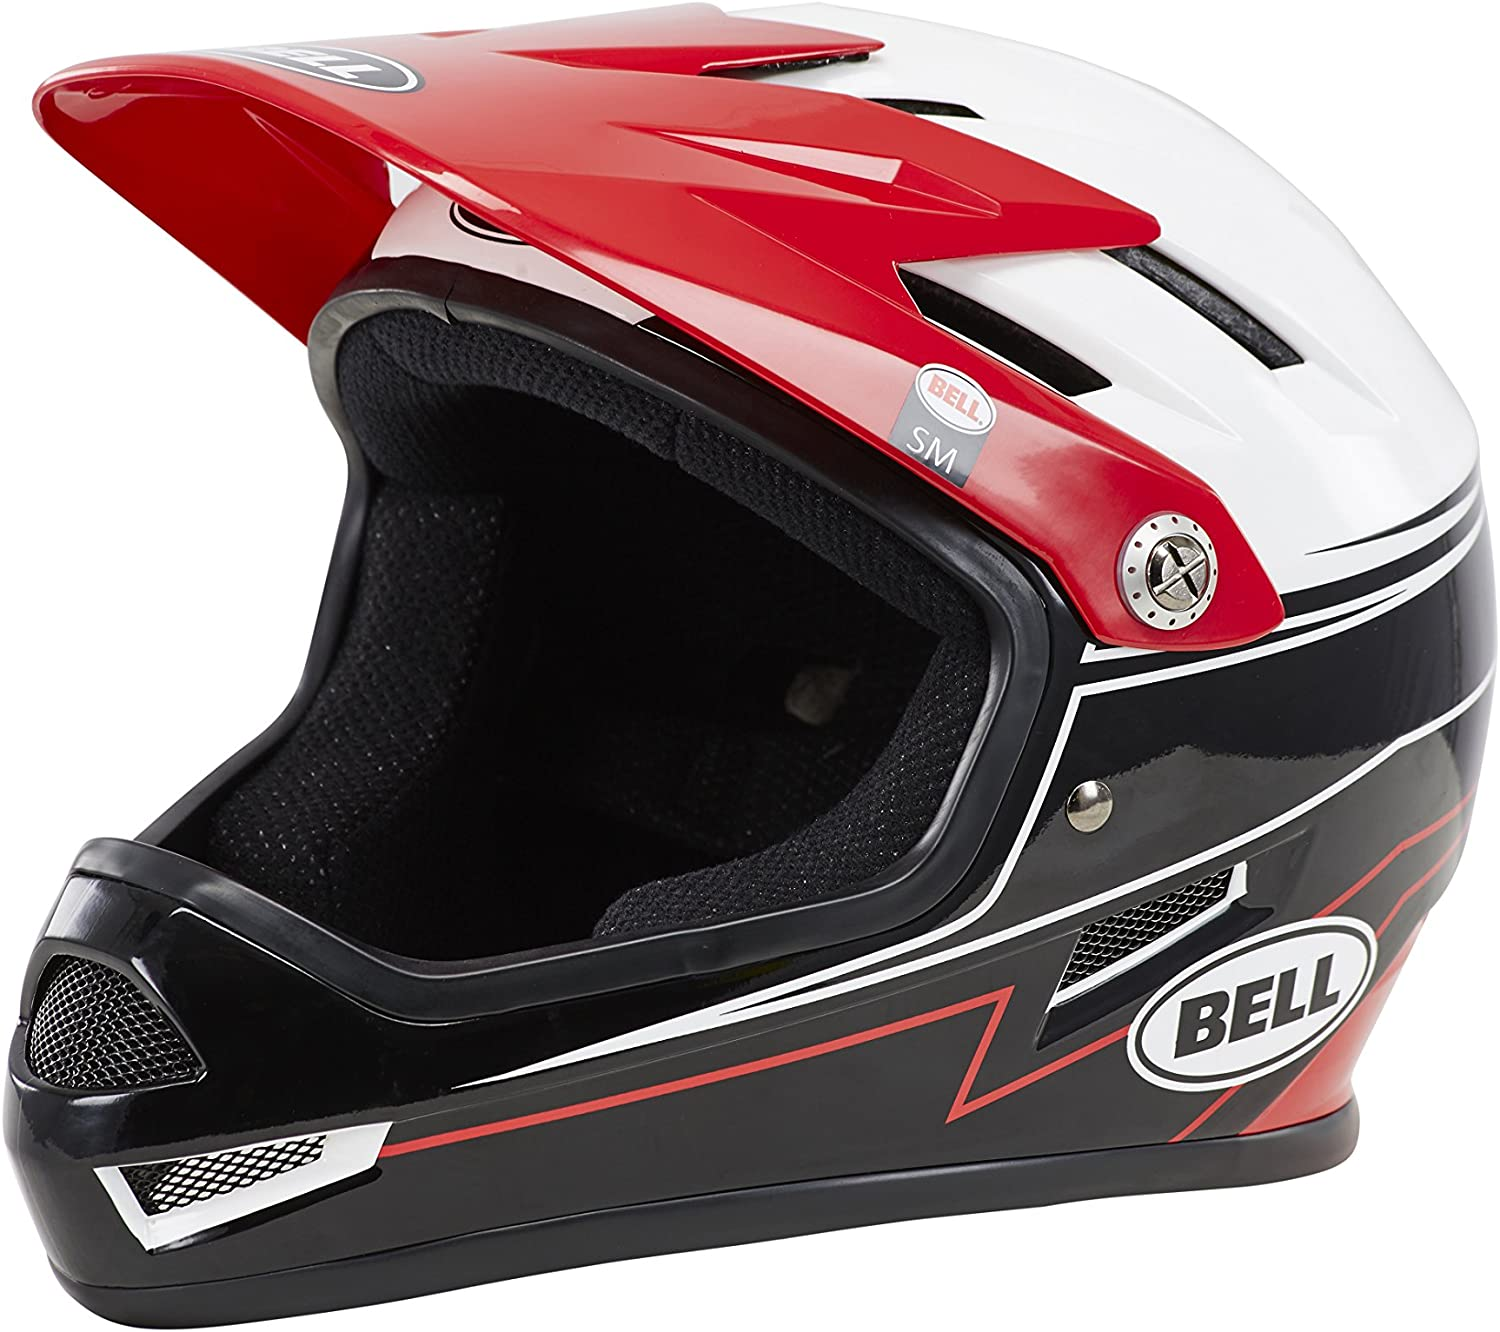 BELL Sanction - Casco de Ciclismo Multiuso, Talla S: Amazon.es ...